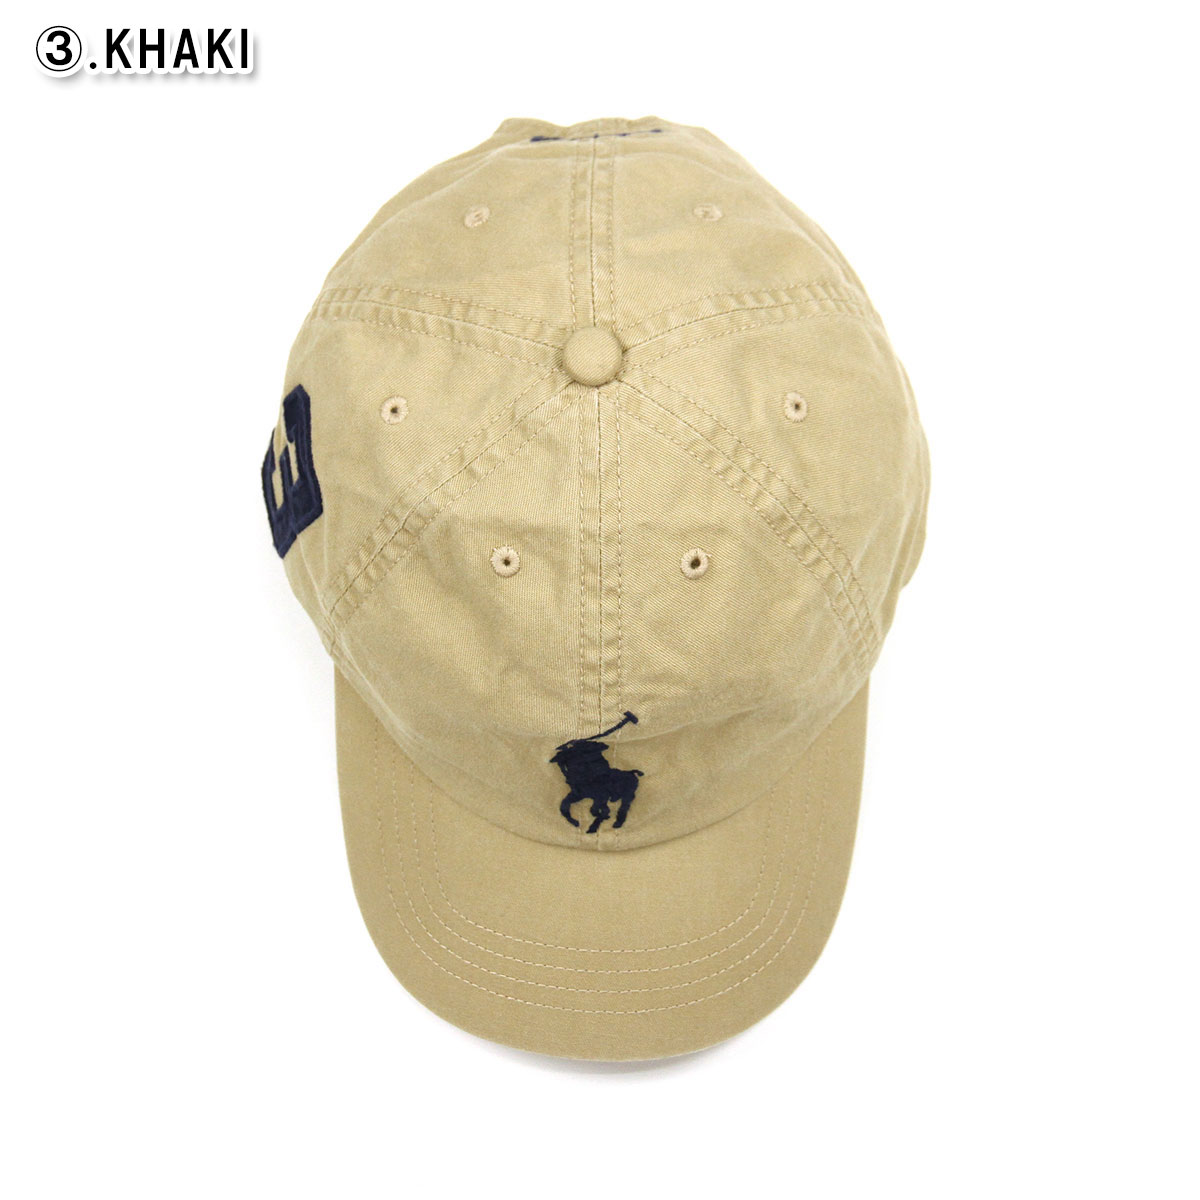 0b3dd1d7 Polo Ralph Lauren kids POLO RALPH LAUREN CHILDREN regular article Boys hat  big pony numbering cap Big Pony Chino Baseball Cap